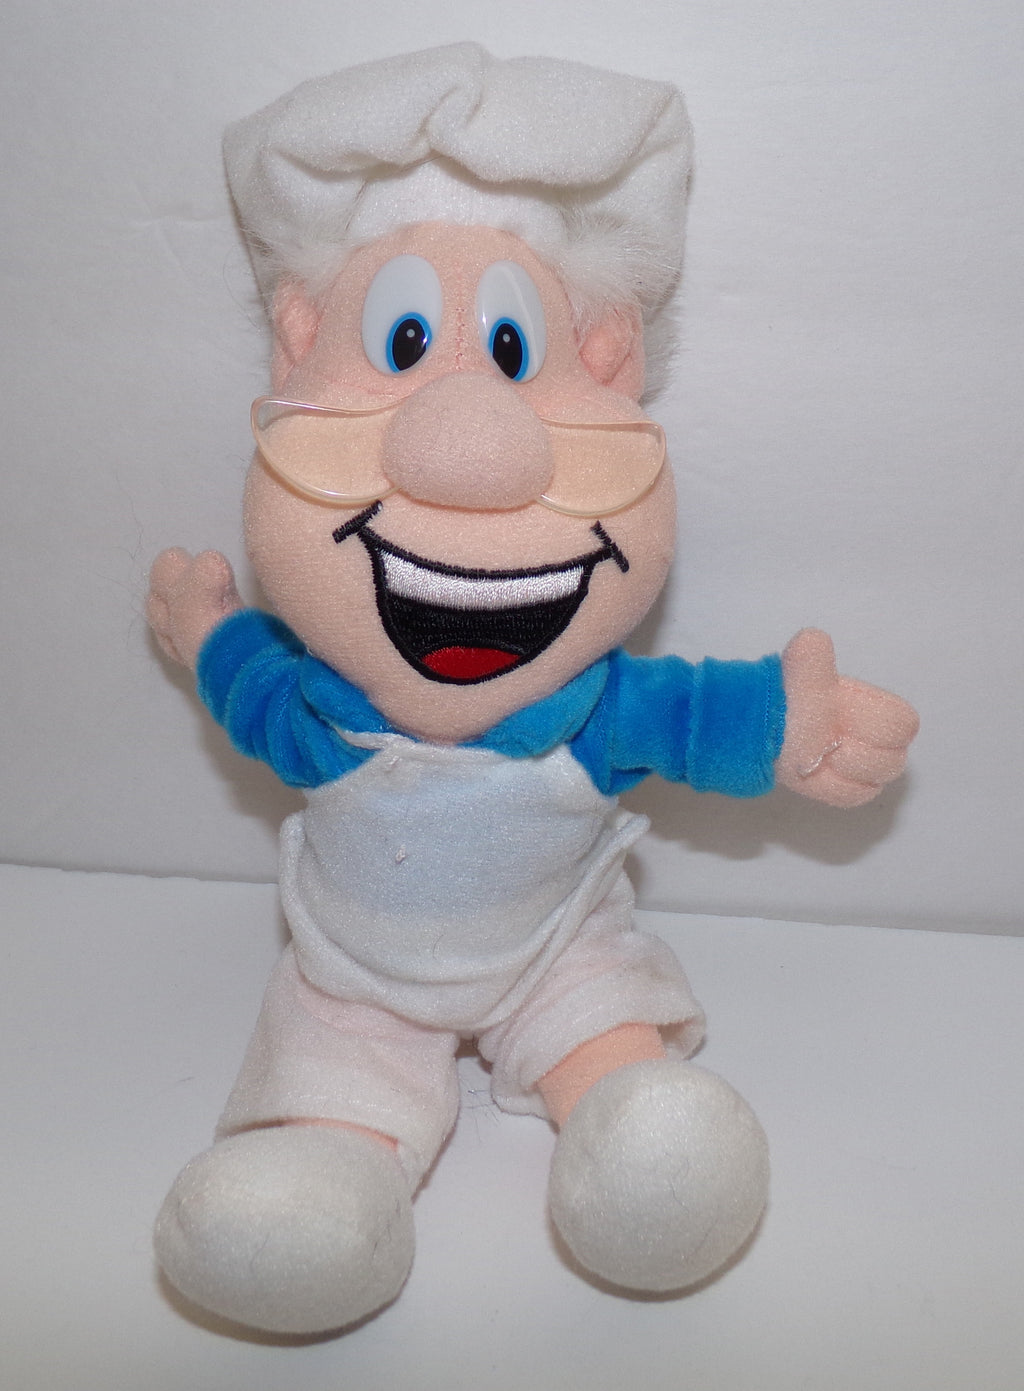 Cinnamon Toast Crunch Plush Wendell-We Got Character